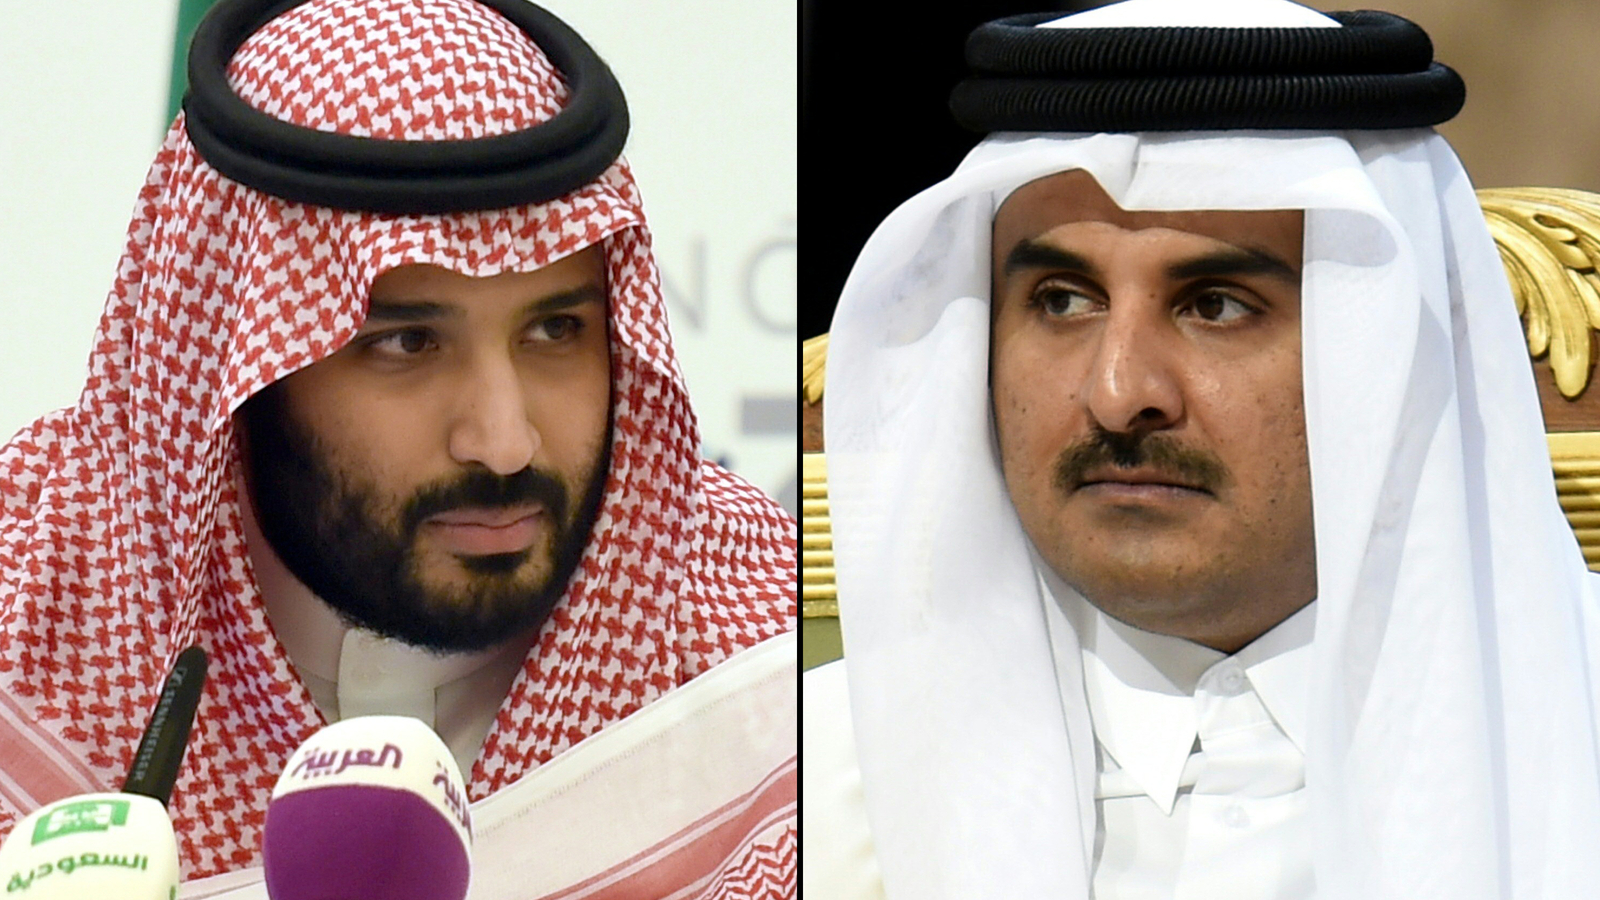 Saudi Arabia and Qatar agree to reopen airspace and maritime borders